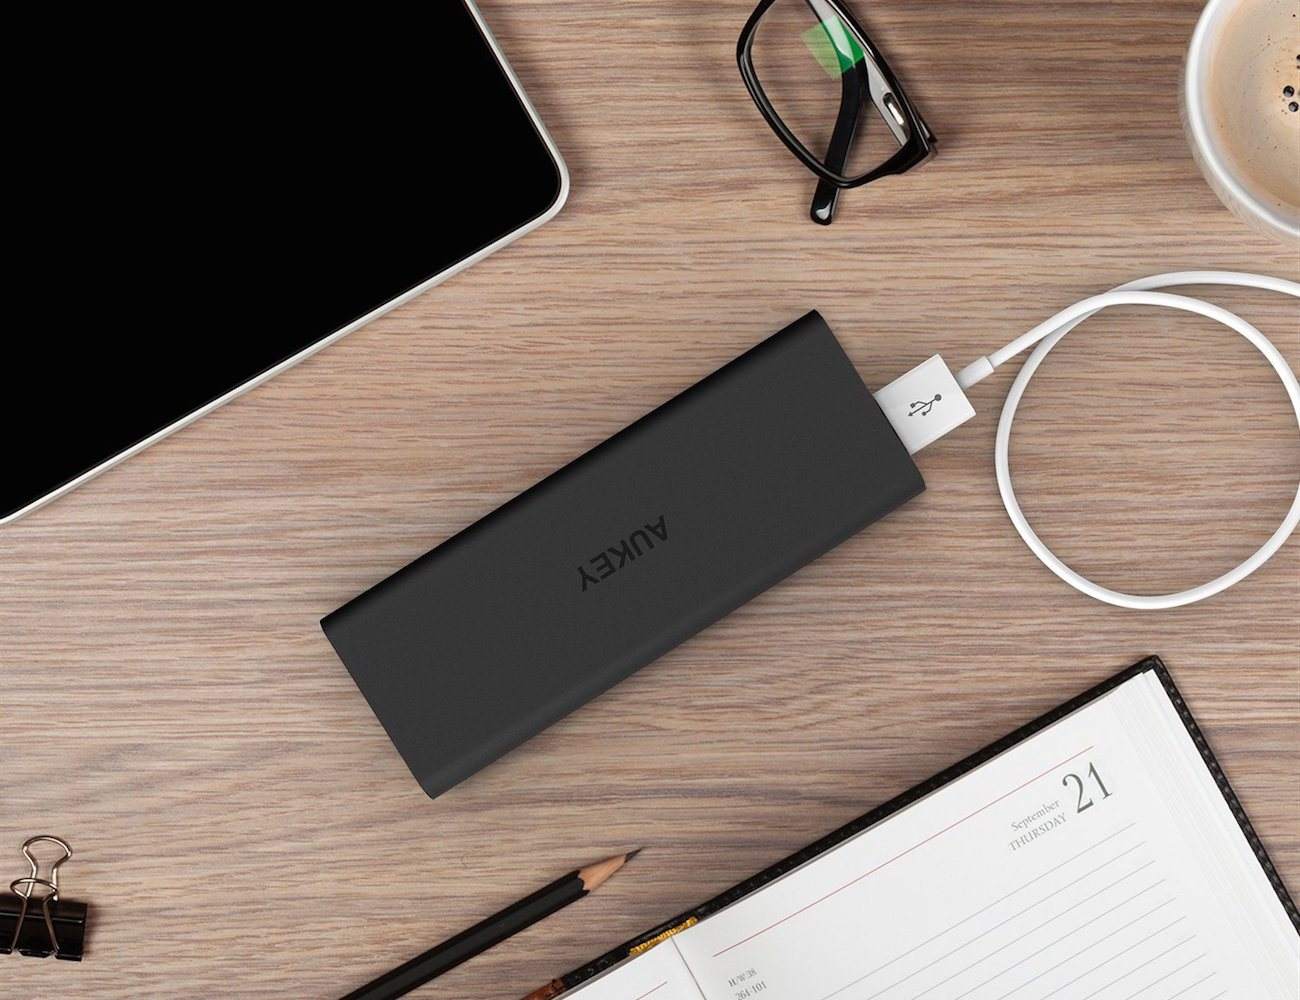 aukey-portable-external-battery-pack-with-aipower-01